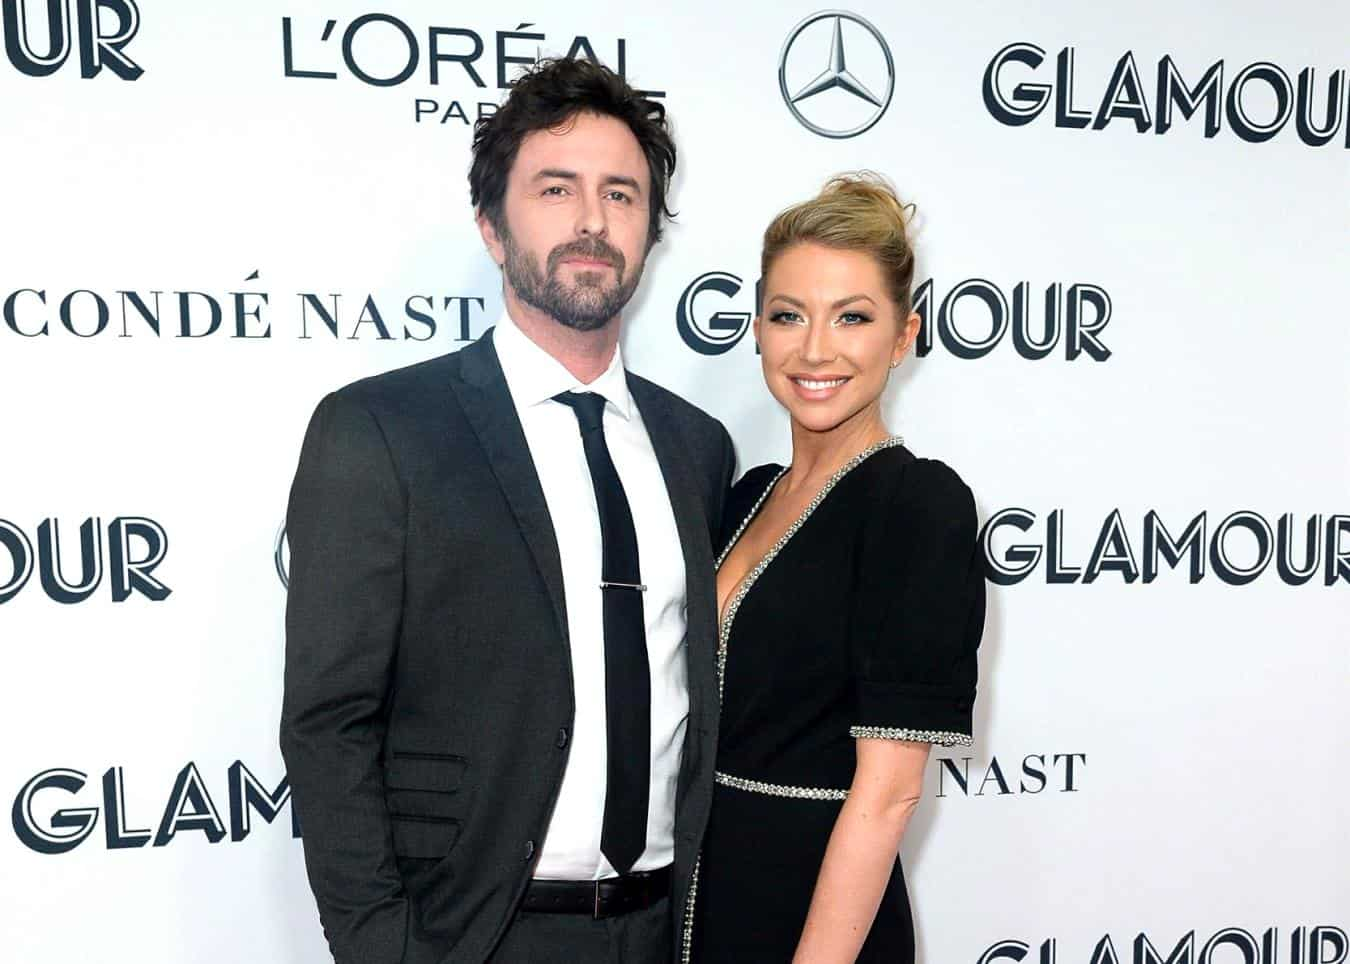 PHOTOS: Ex-Vanderpump Rules Star Stassi Schroeder Shares a Screenshot of One of the First Text Messages She Received From Husband Beau Clark Before Posting a Hilarious Photo of How Their Relationship is Going Three Years Later